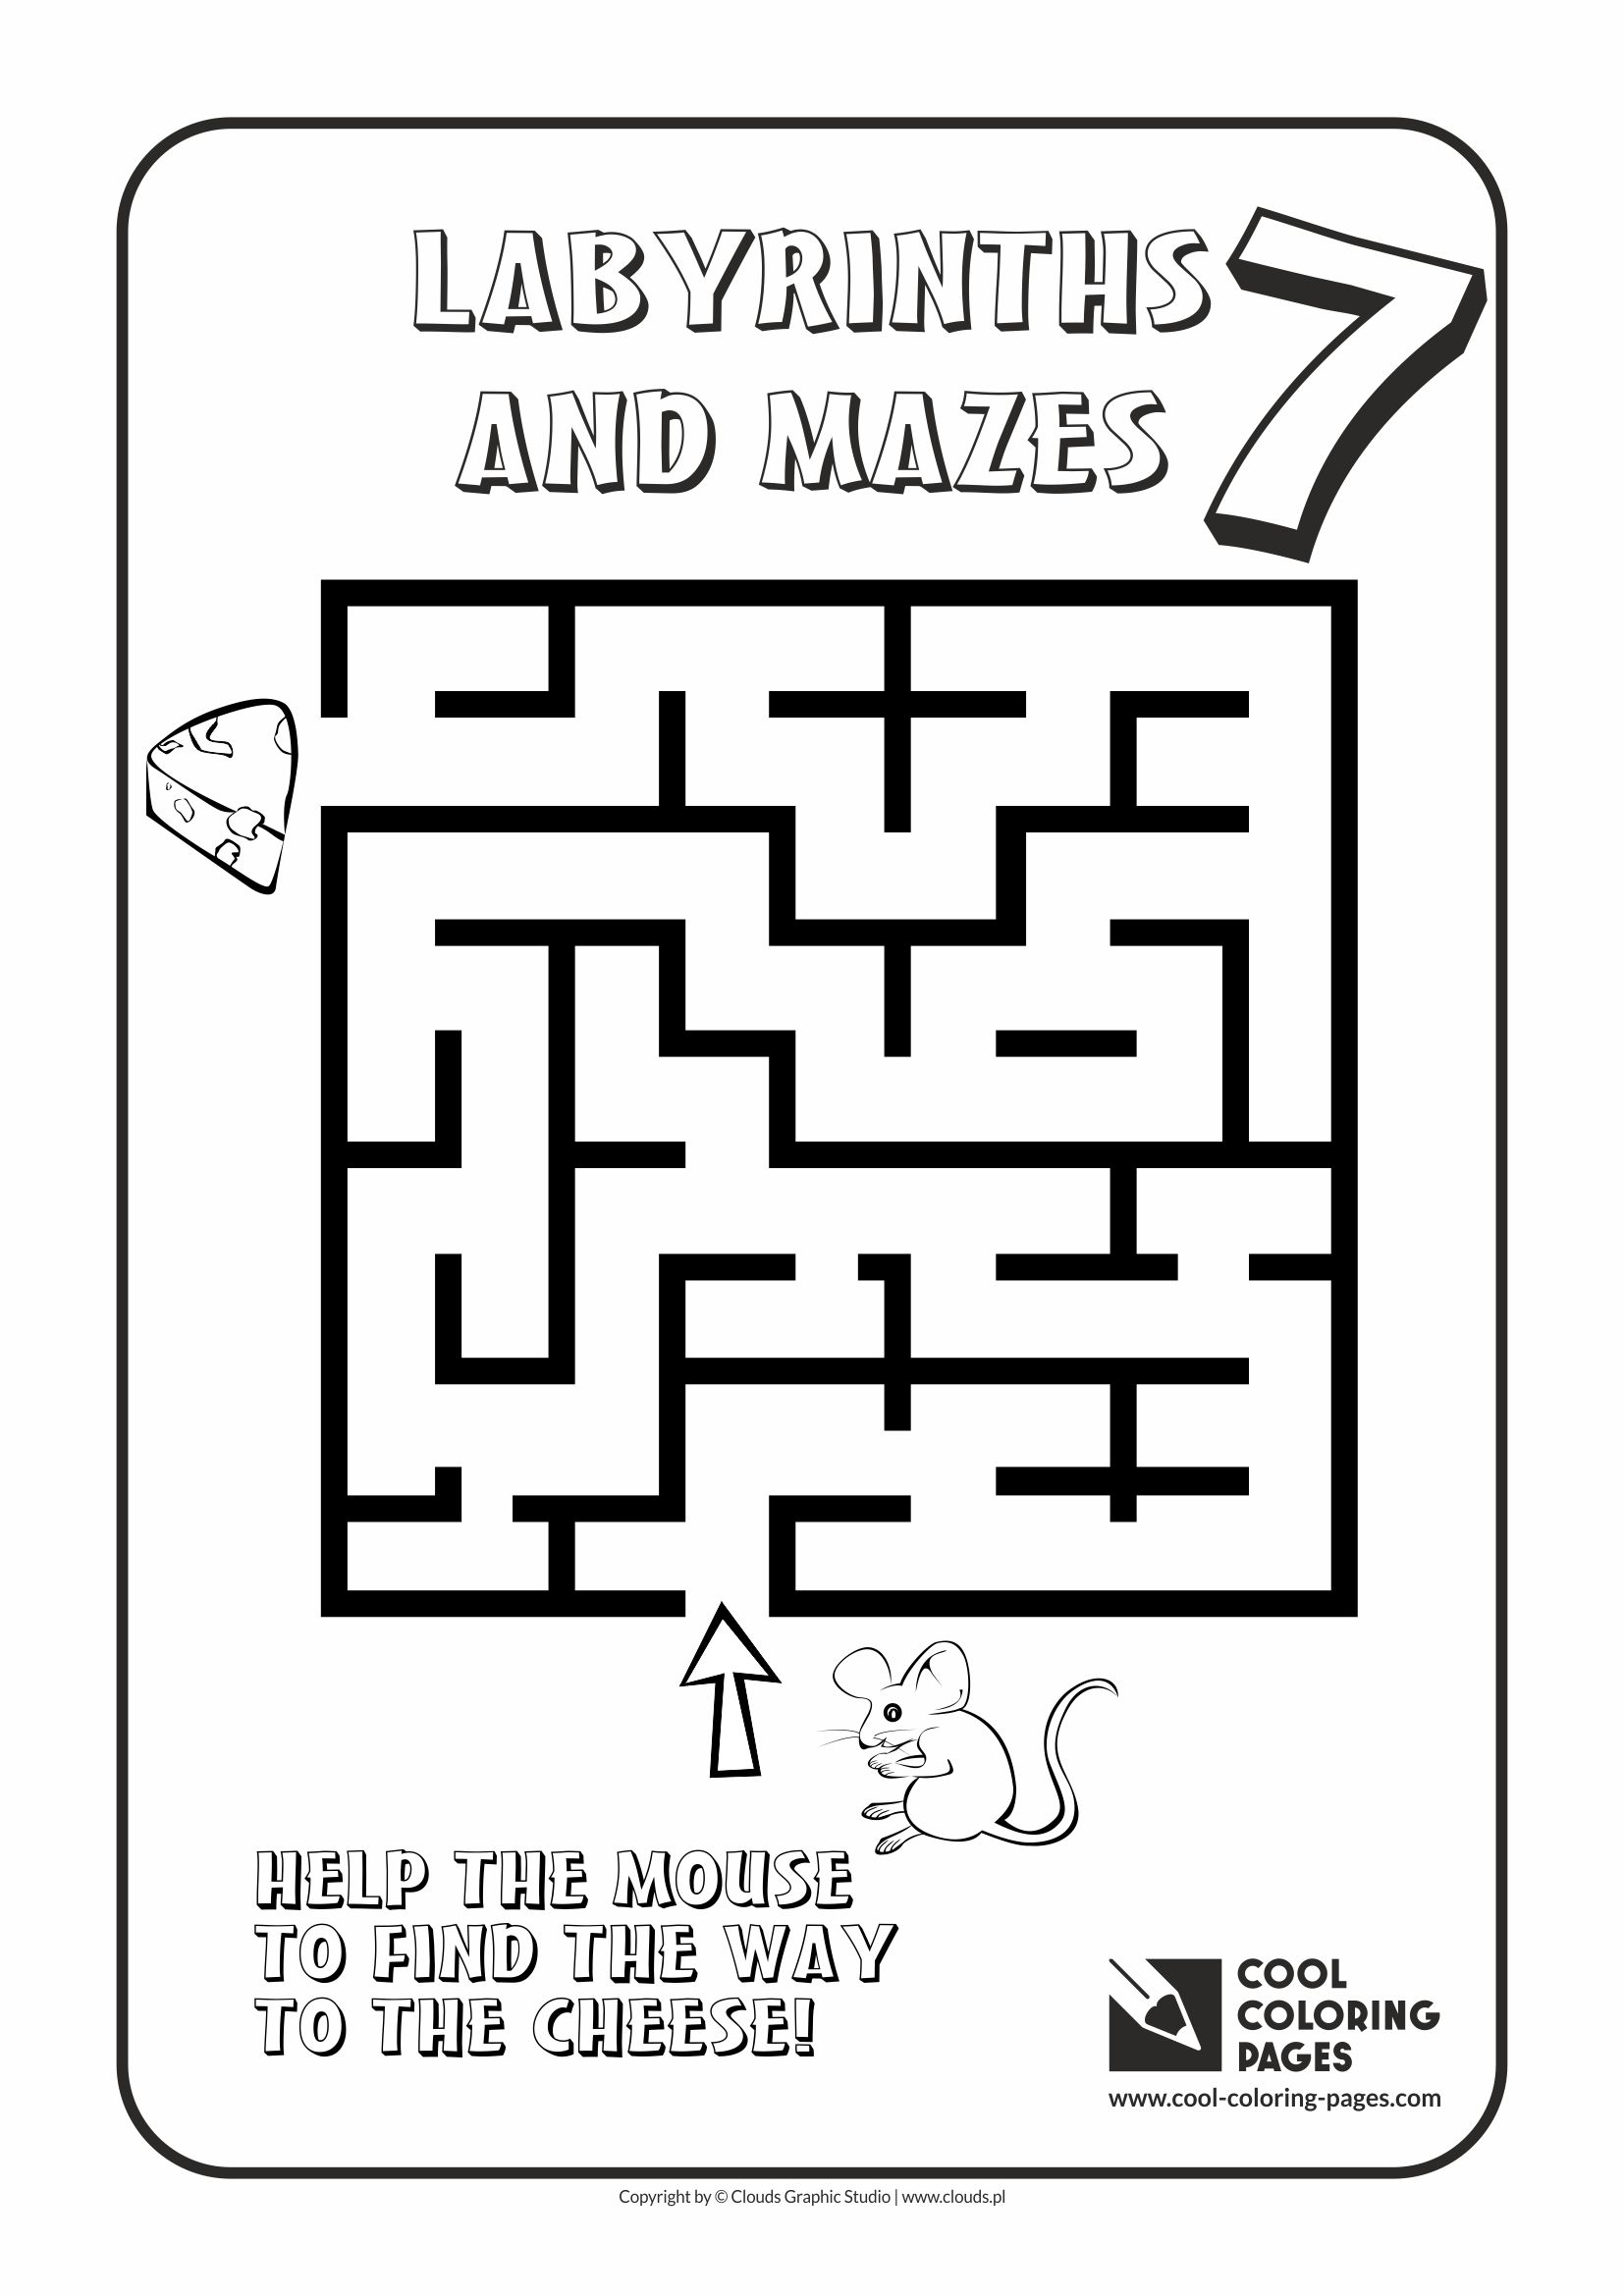 Cool Coloring Pages - Labyrinths and mazes / Maze no 7